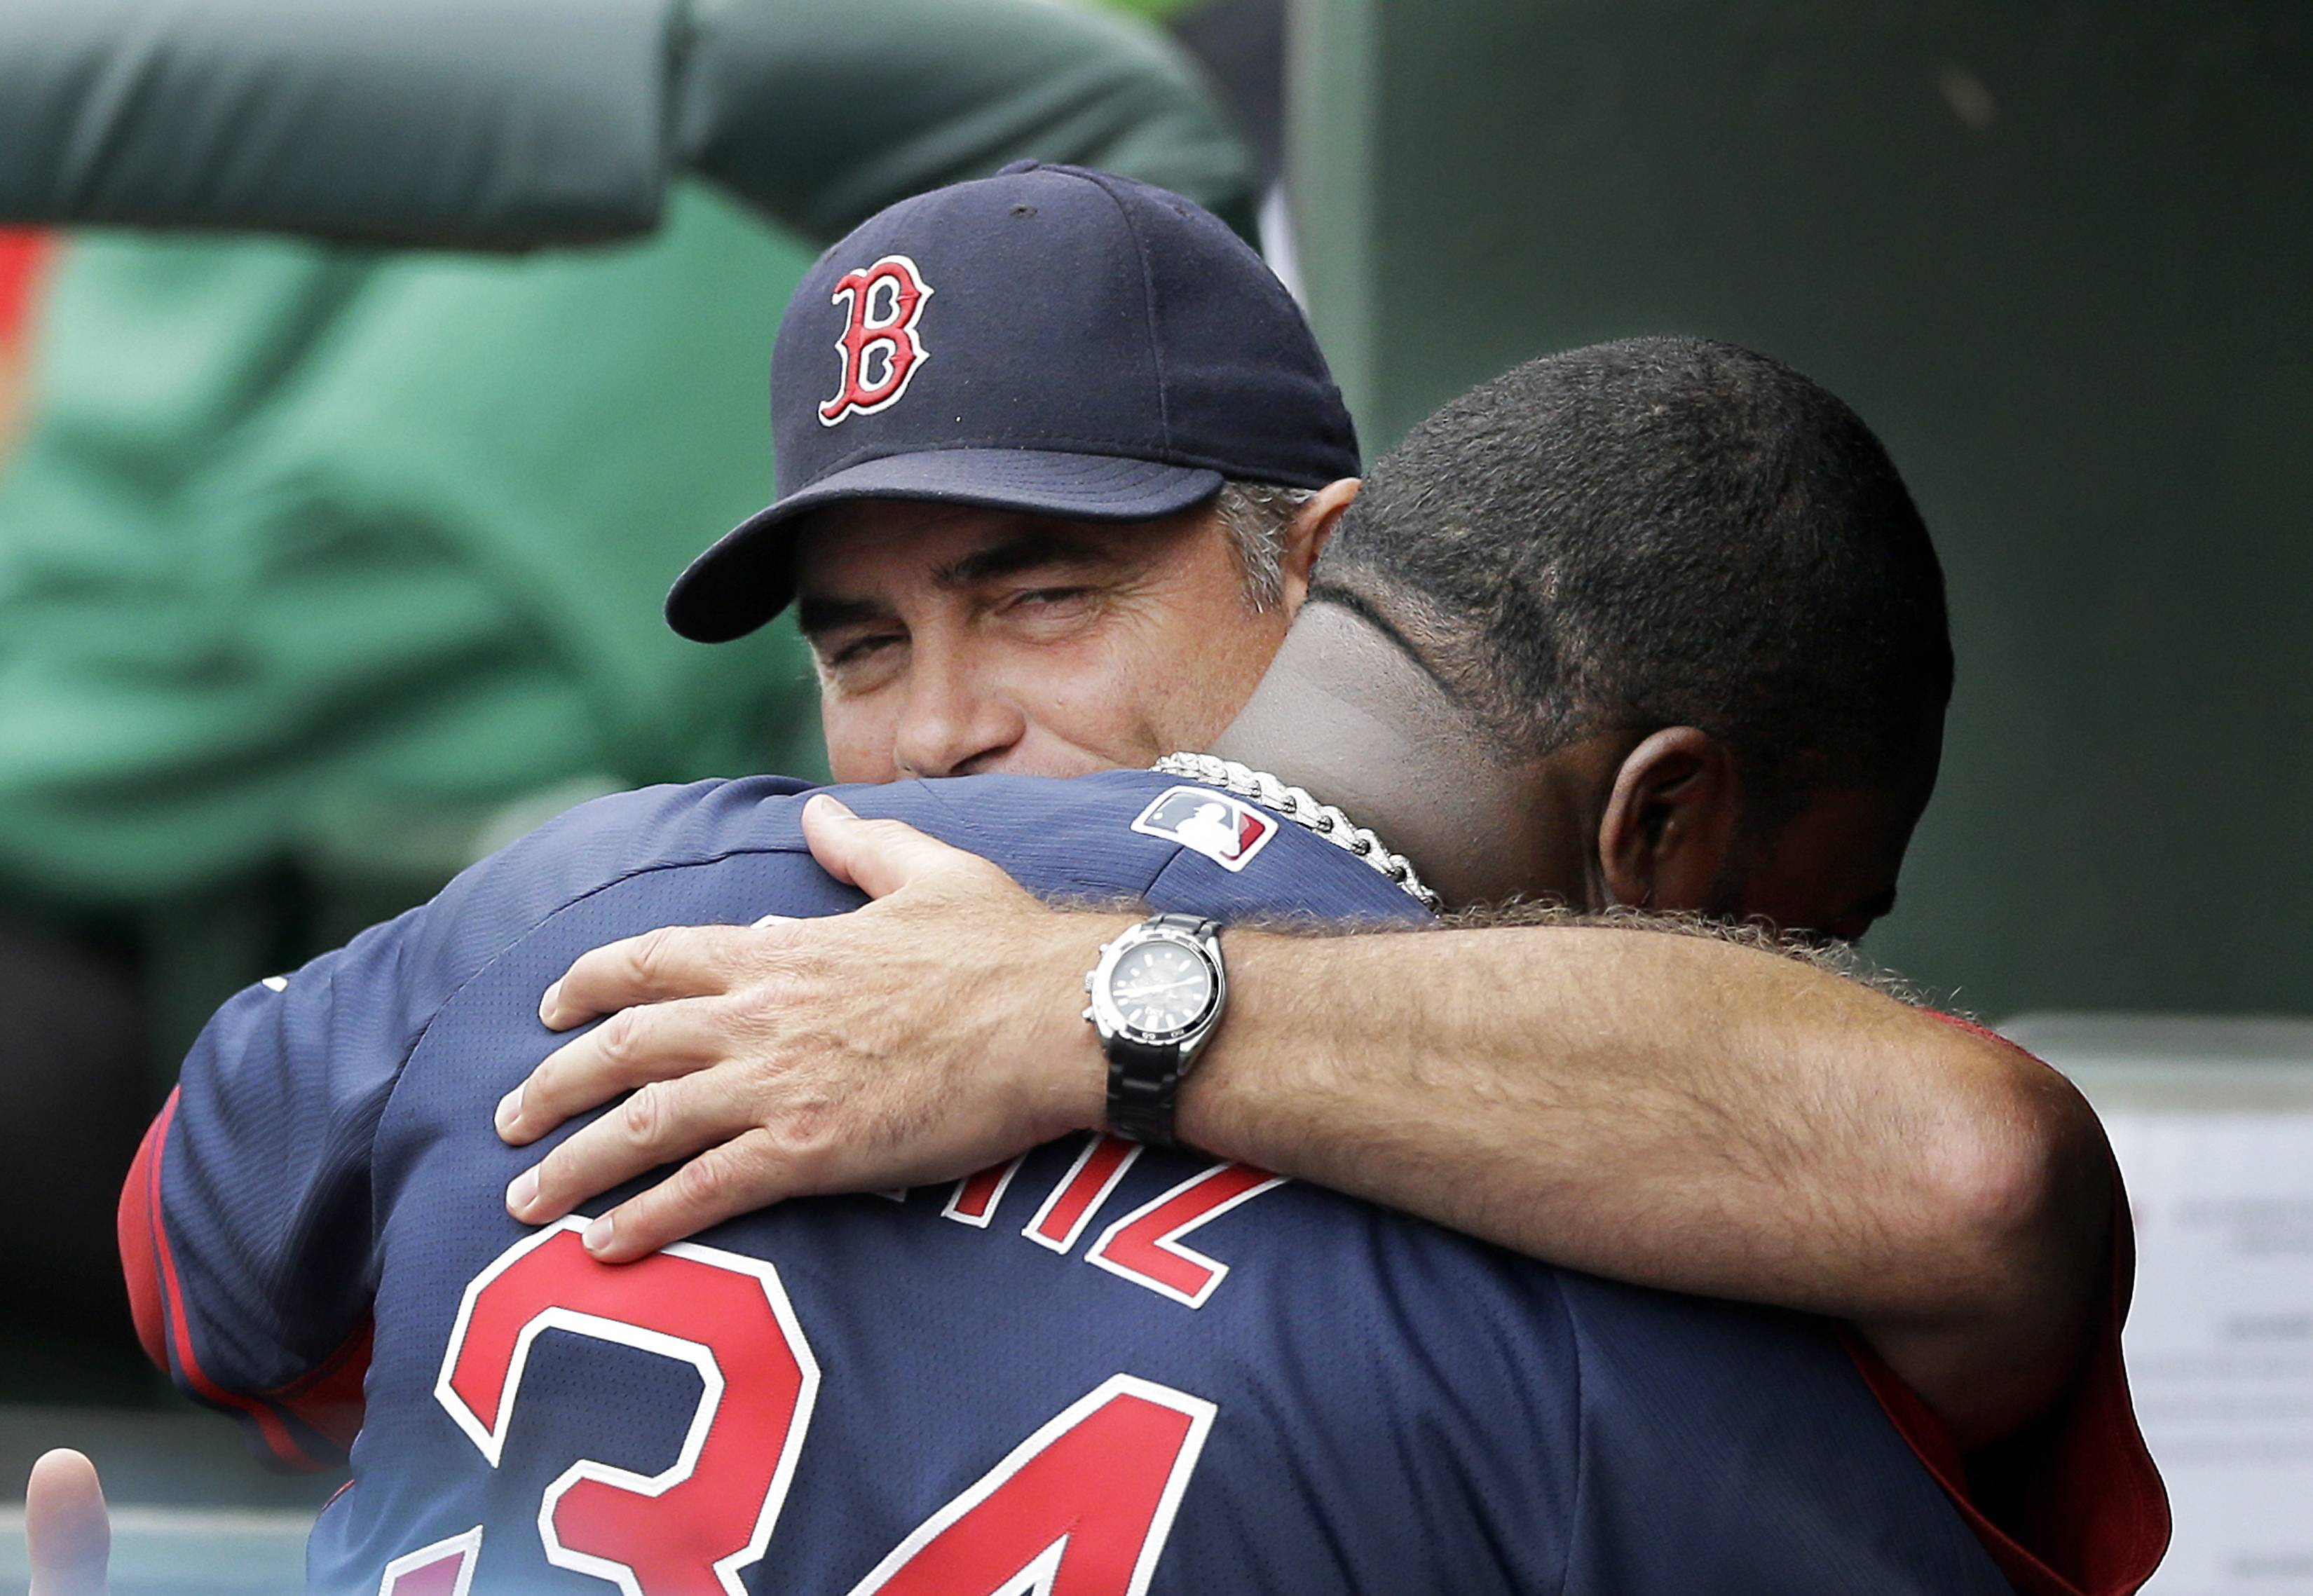 Boston Red Sox manager John Farrell hugs designated hitter David Ortiz, right, in the dugout before a spring exhibition baseball game against the Baltimore Orioles in Sarasota, Fla., Monday, March 24, 2014. (AP Photo/Carlos Osorio)